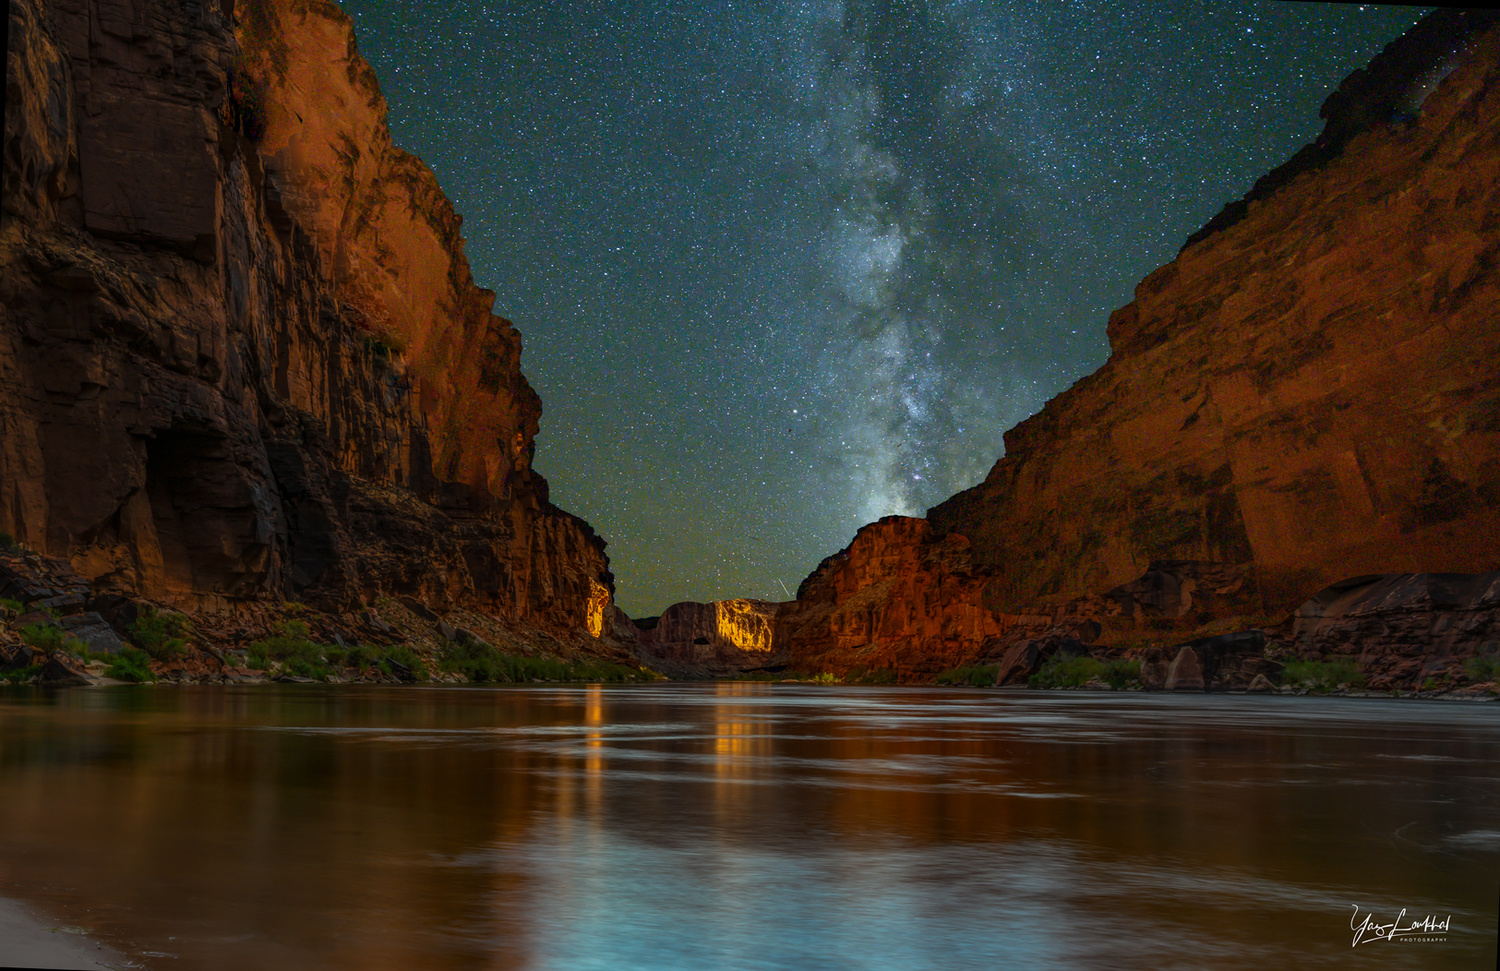 Milky Way Over the Grand Canyon by Yaz Loukhal